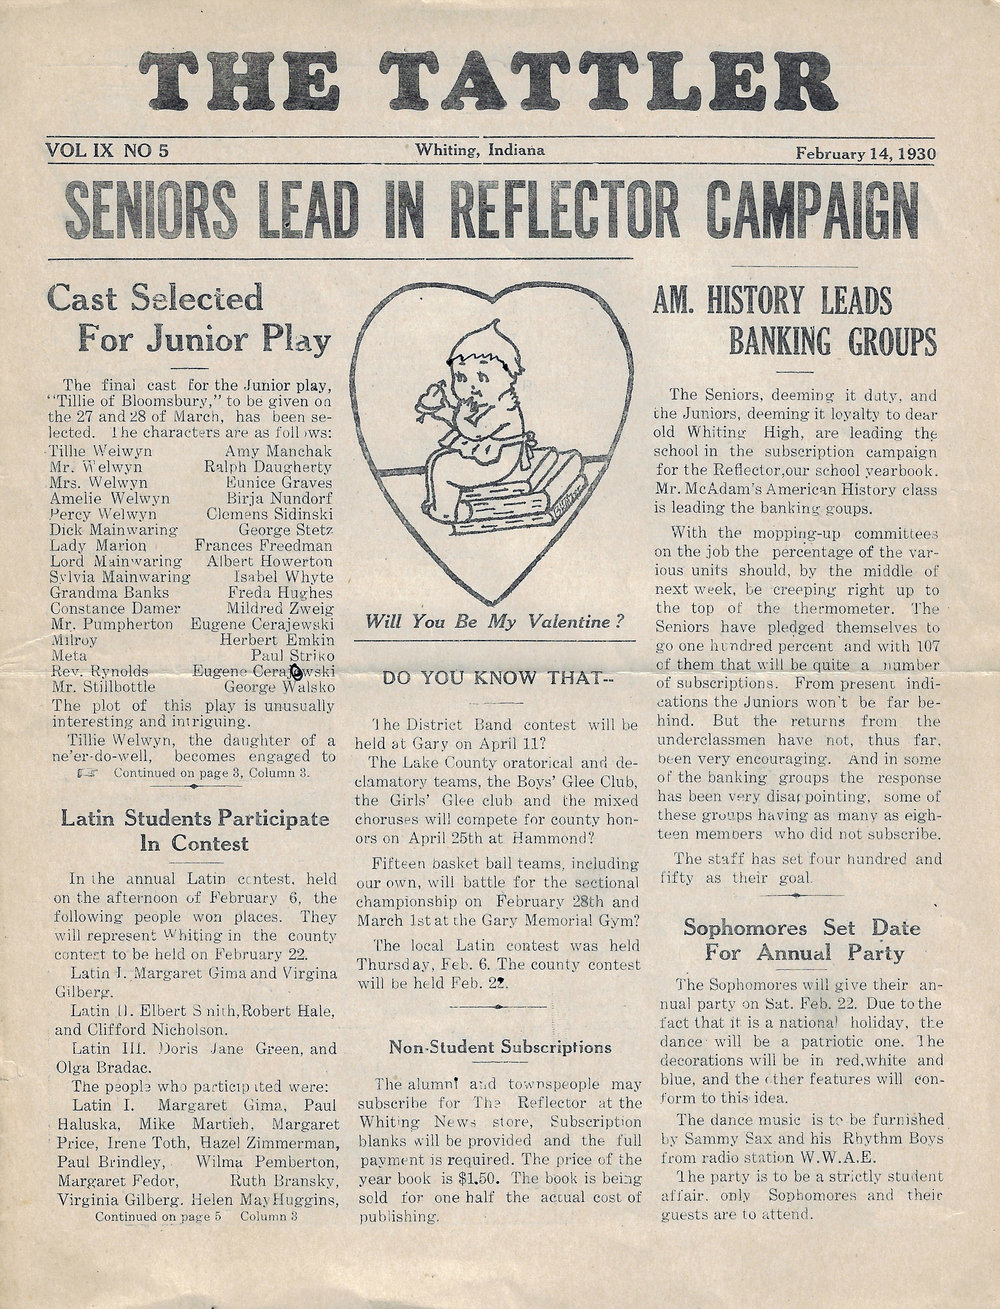 The February 14, 1930 edition of The Tattler, the Whiting High School newspaper.